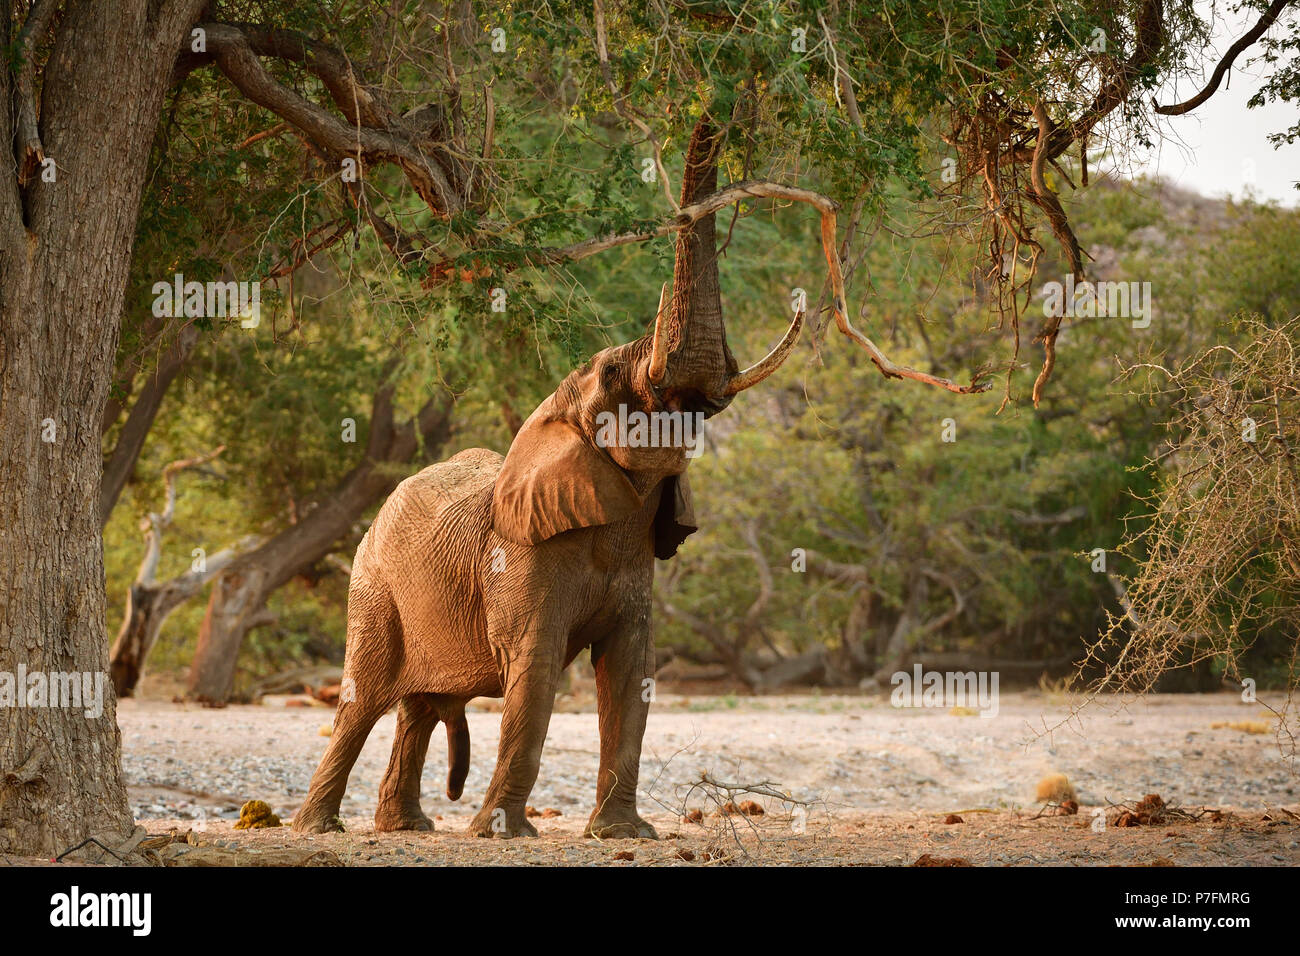 Desert elephant (Loxodonta africana) tears leaves and branches from a tree, Huab River, Namibia - Stock Image